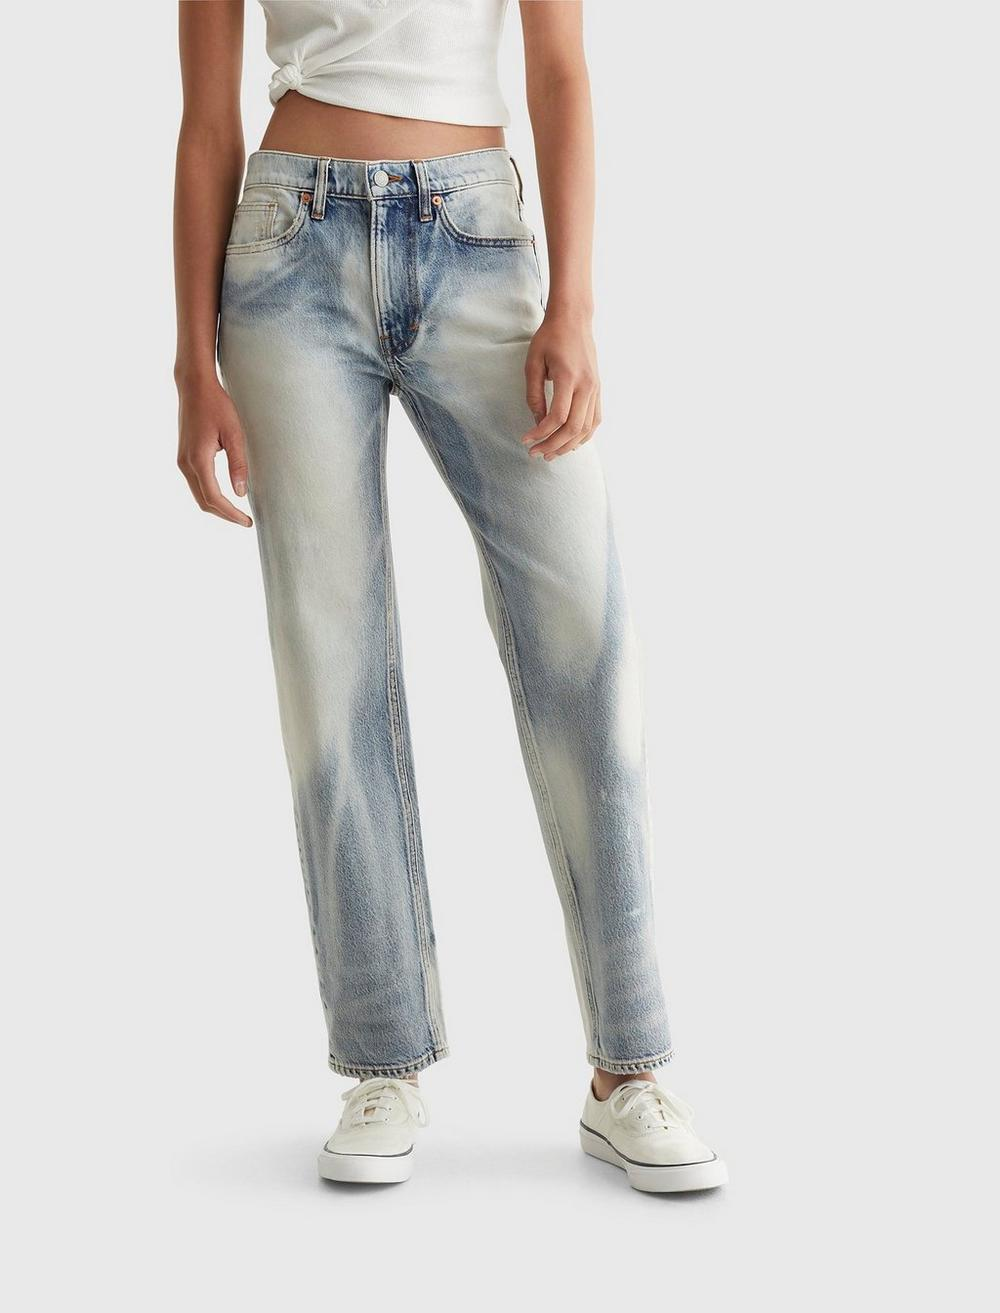 THE MID RISE BOY JEAN, image 1